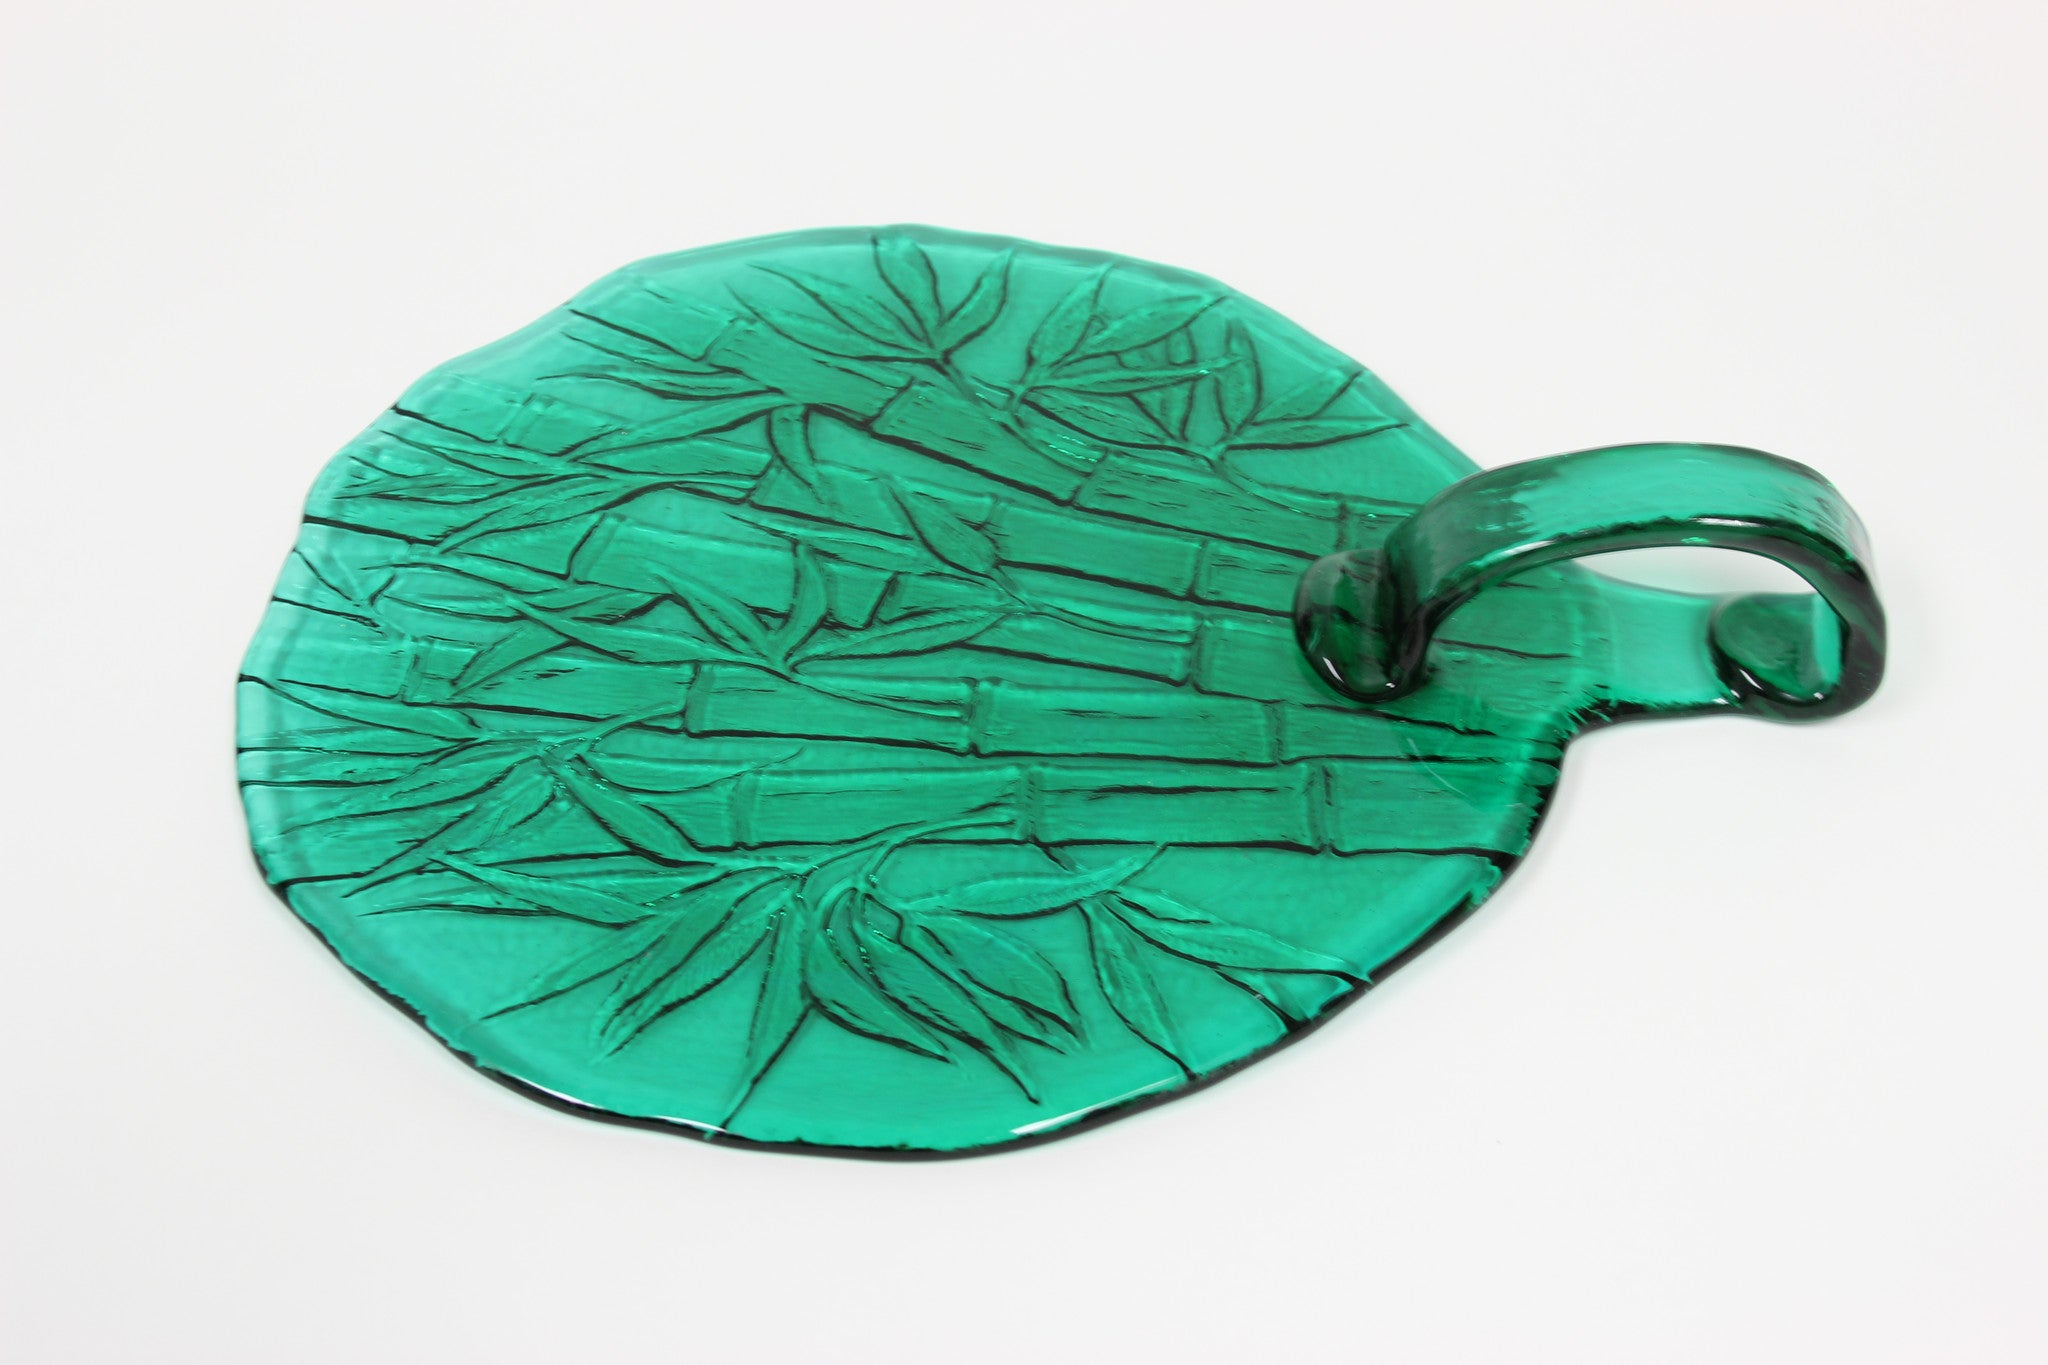 Green Glass Serving Dish - Carleton Varney